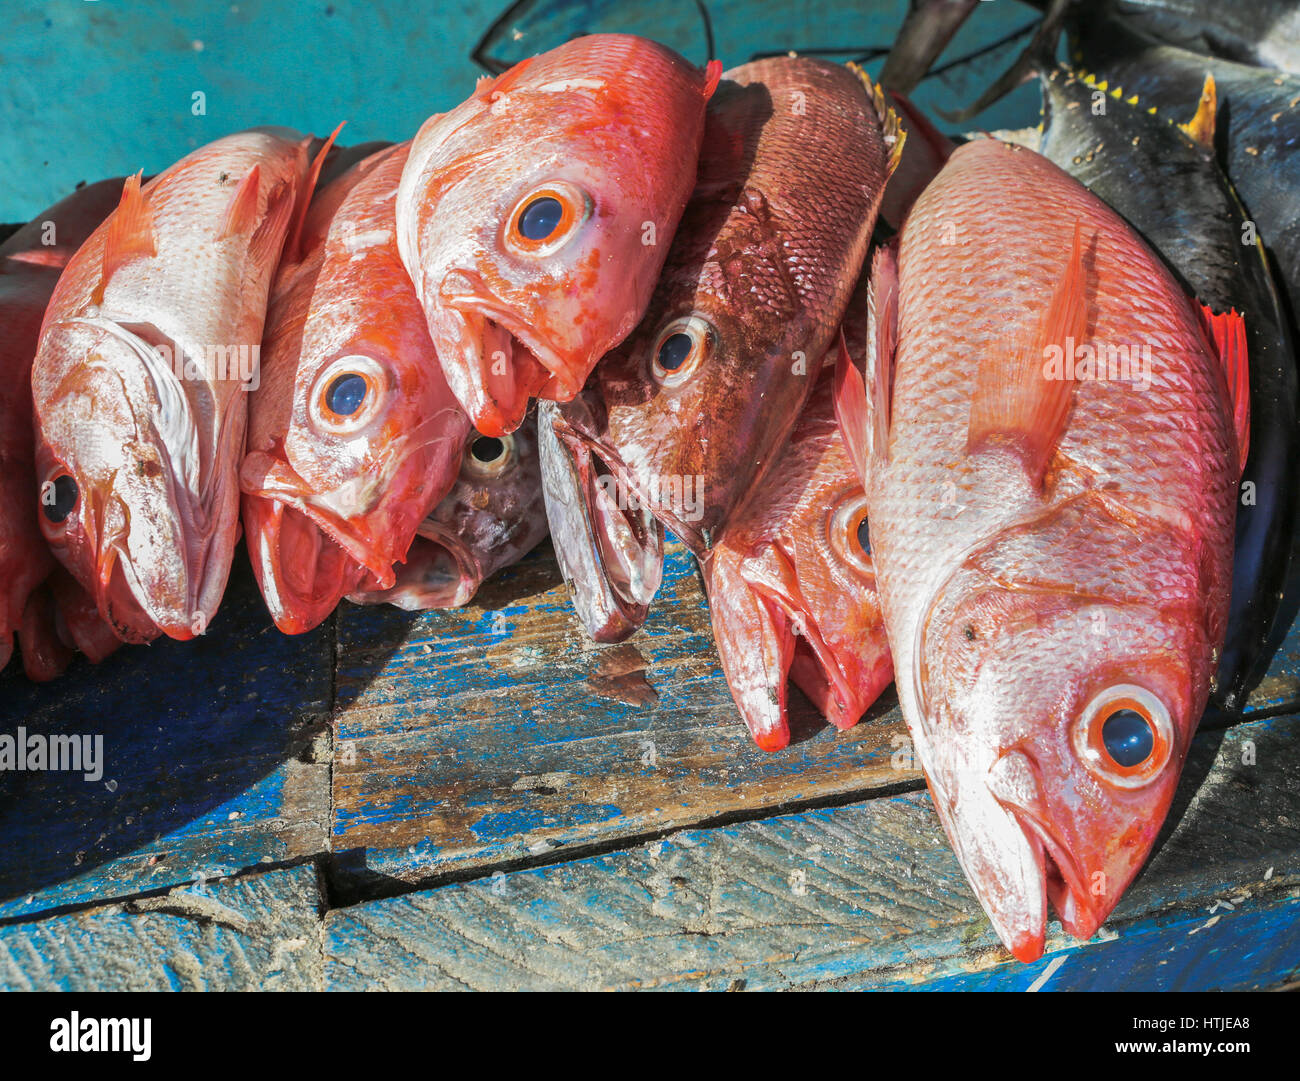 Red fish for sale on street stock photo royalty free for Stock fish for sale